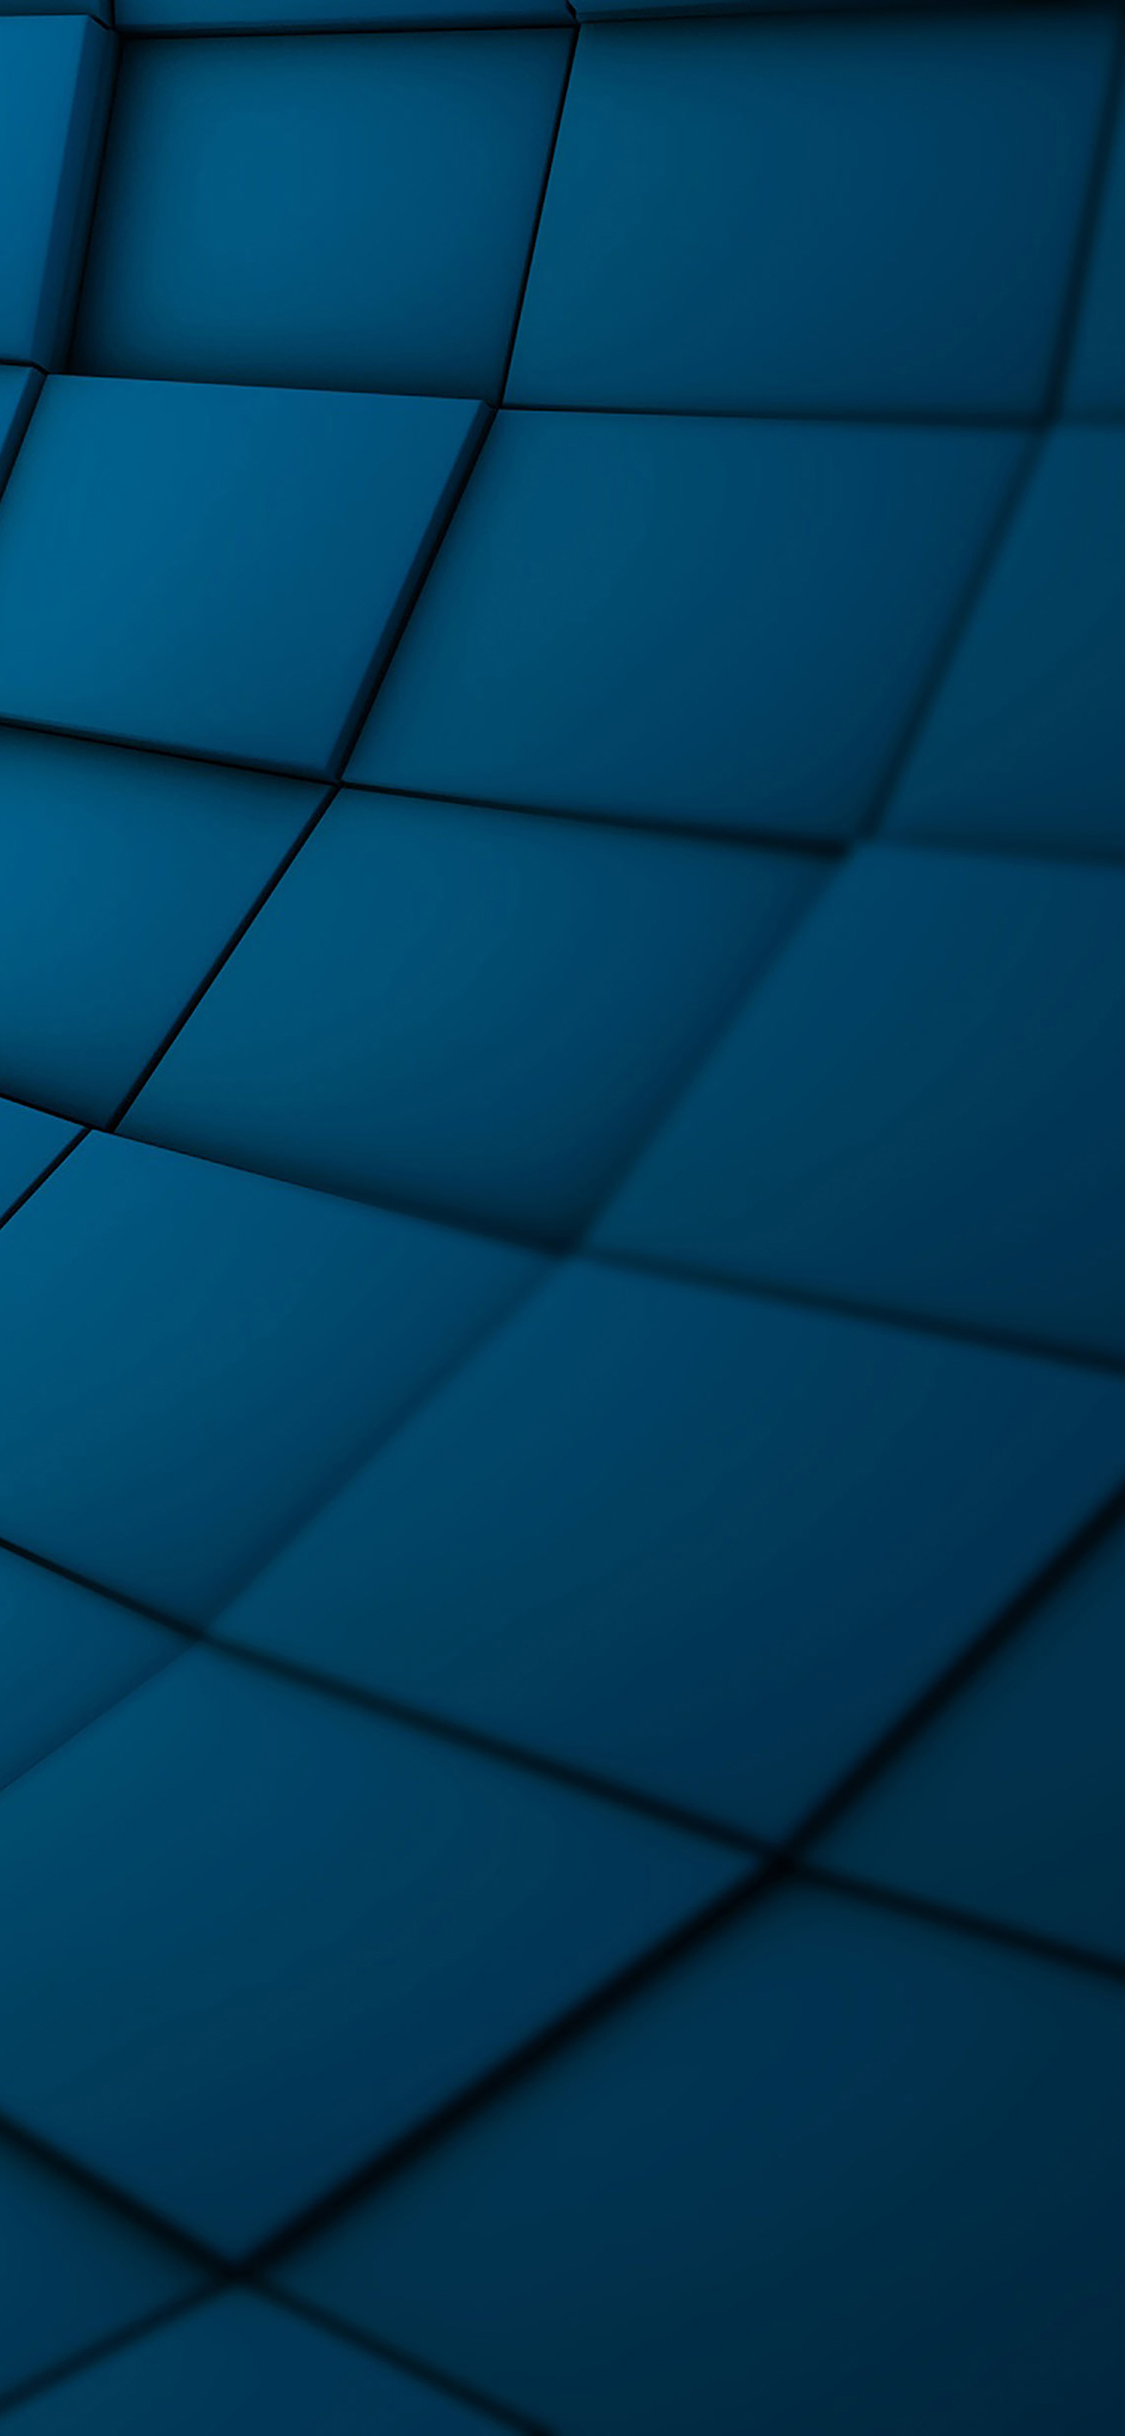 iPhoneXpapers.com-Apple-iPhone-wallpaper-va77-wallpaper-brick-3ds-blue-pattern